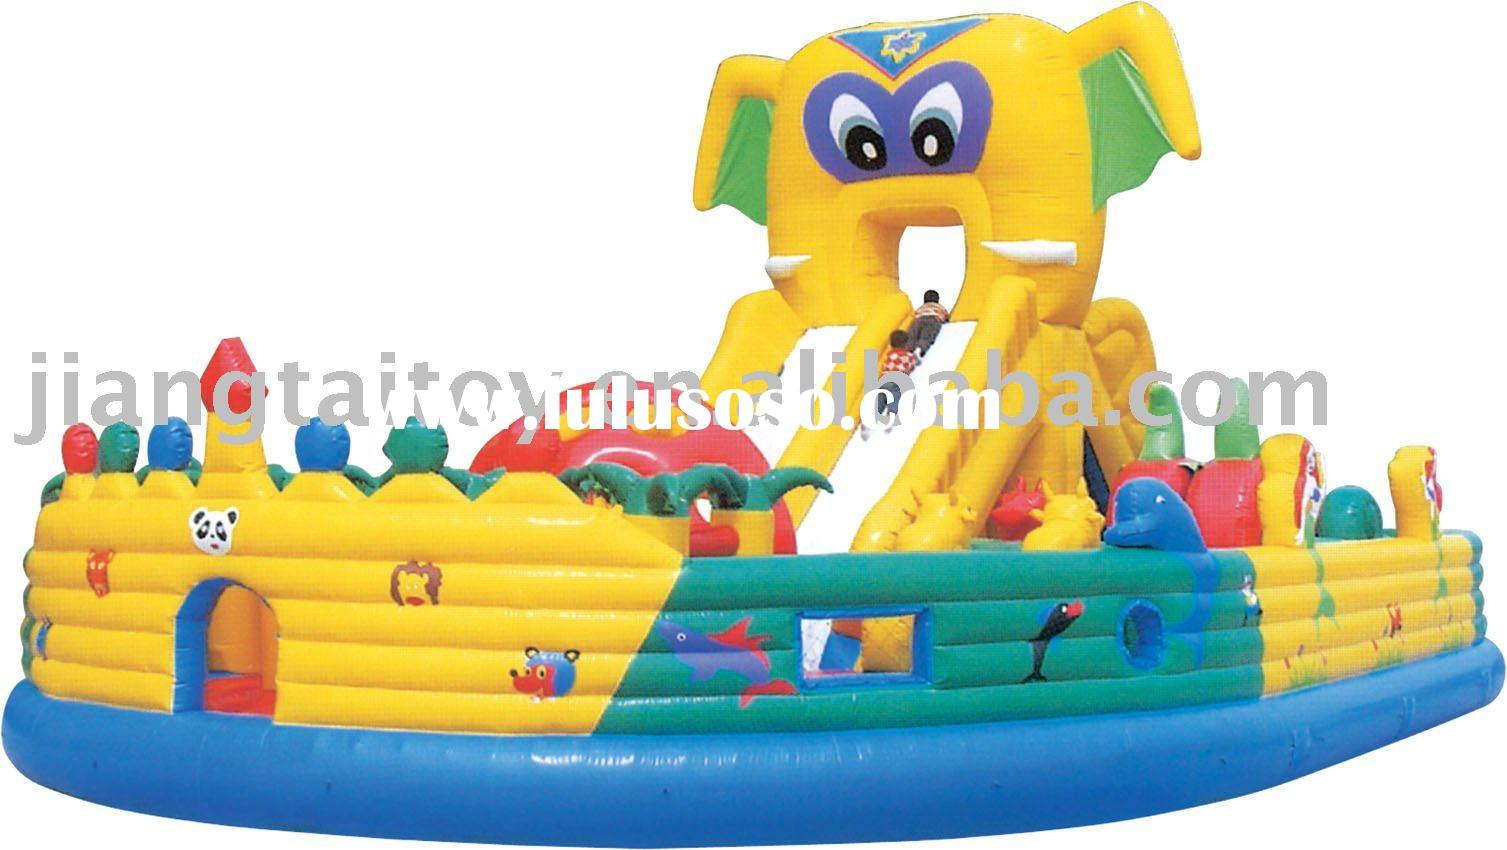 Inflatable bounce PVC castle climber slide jumppimg combo set games for kids.